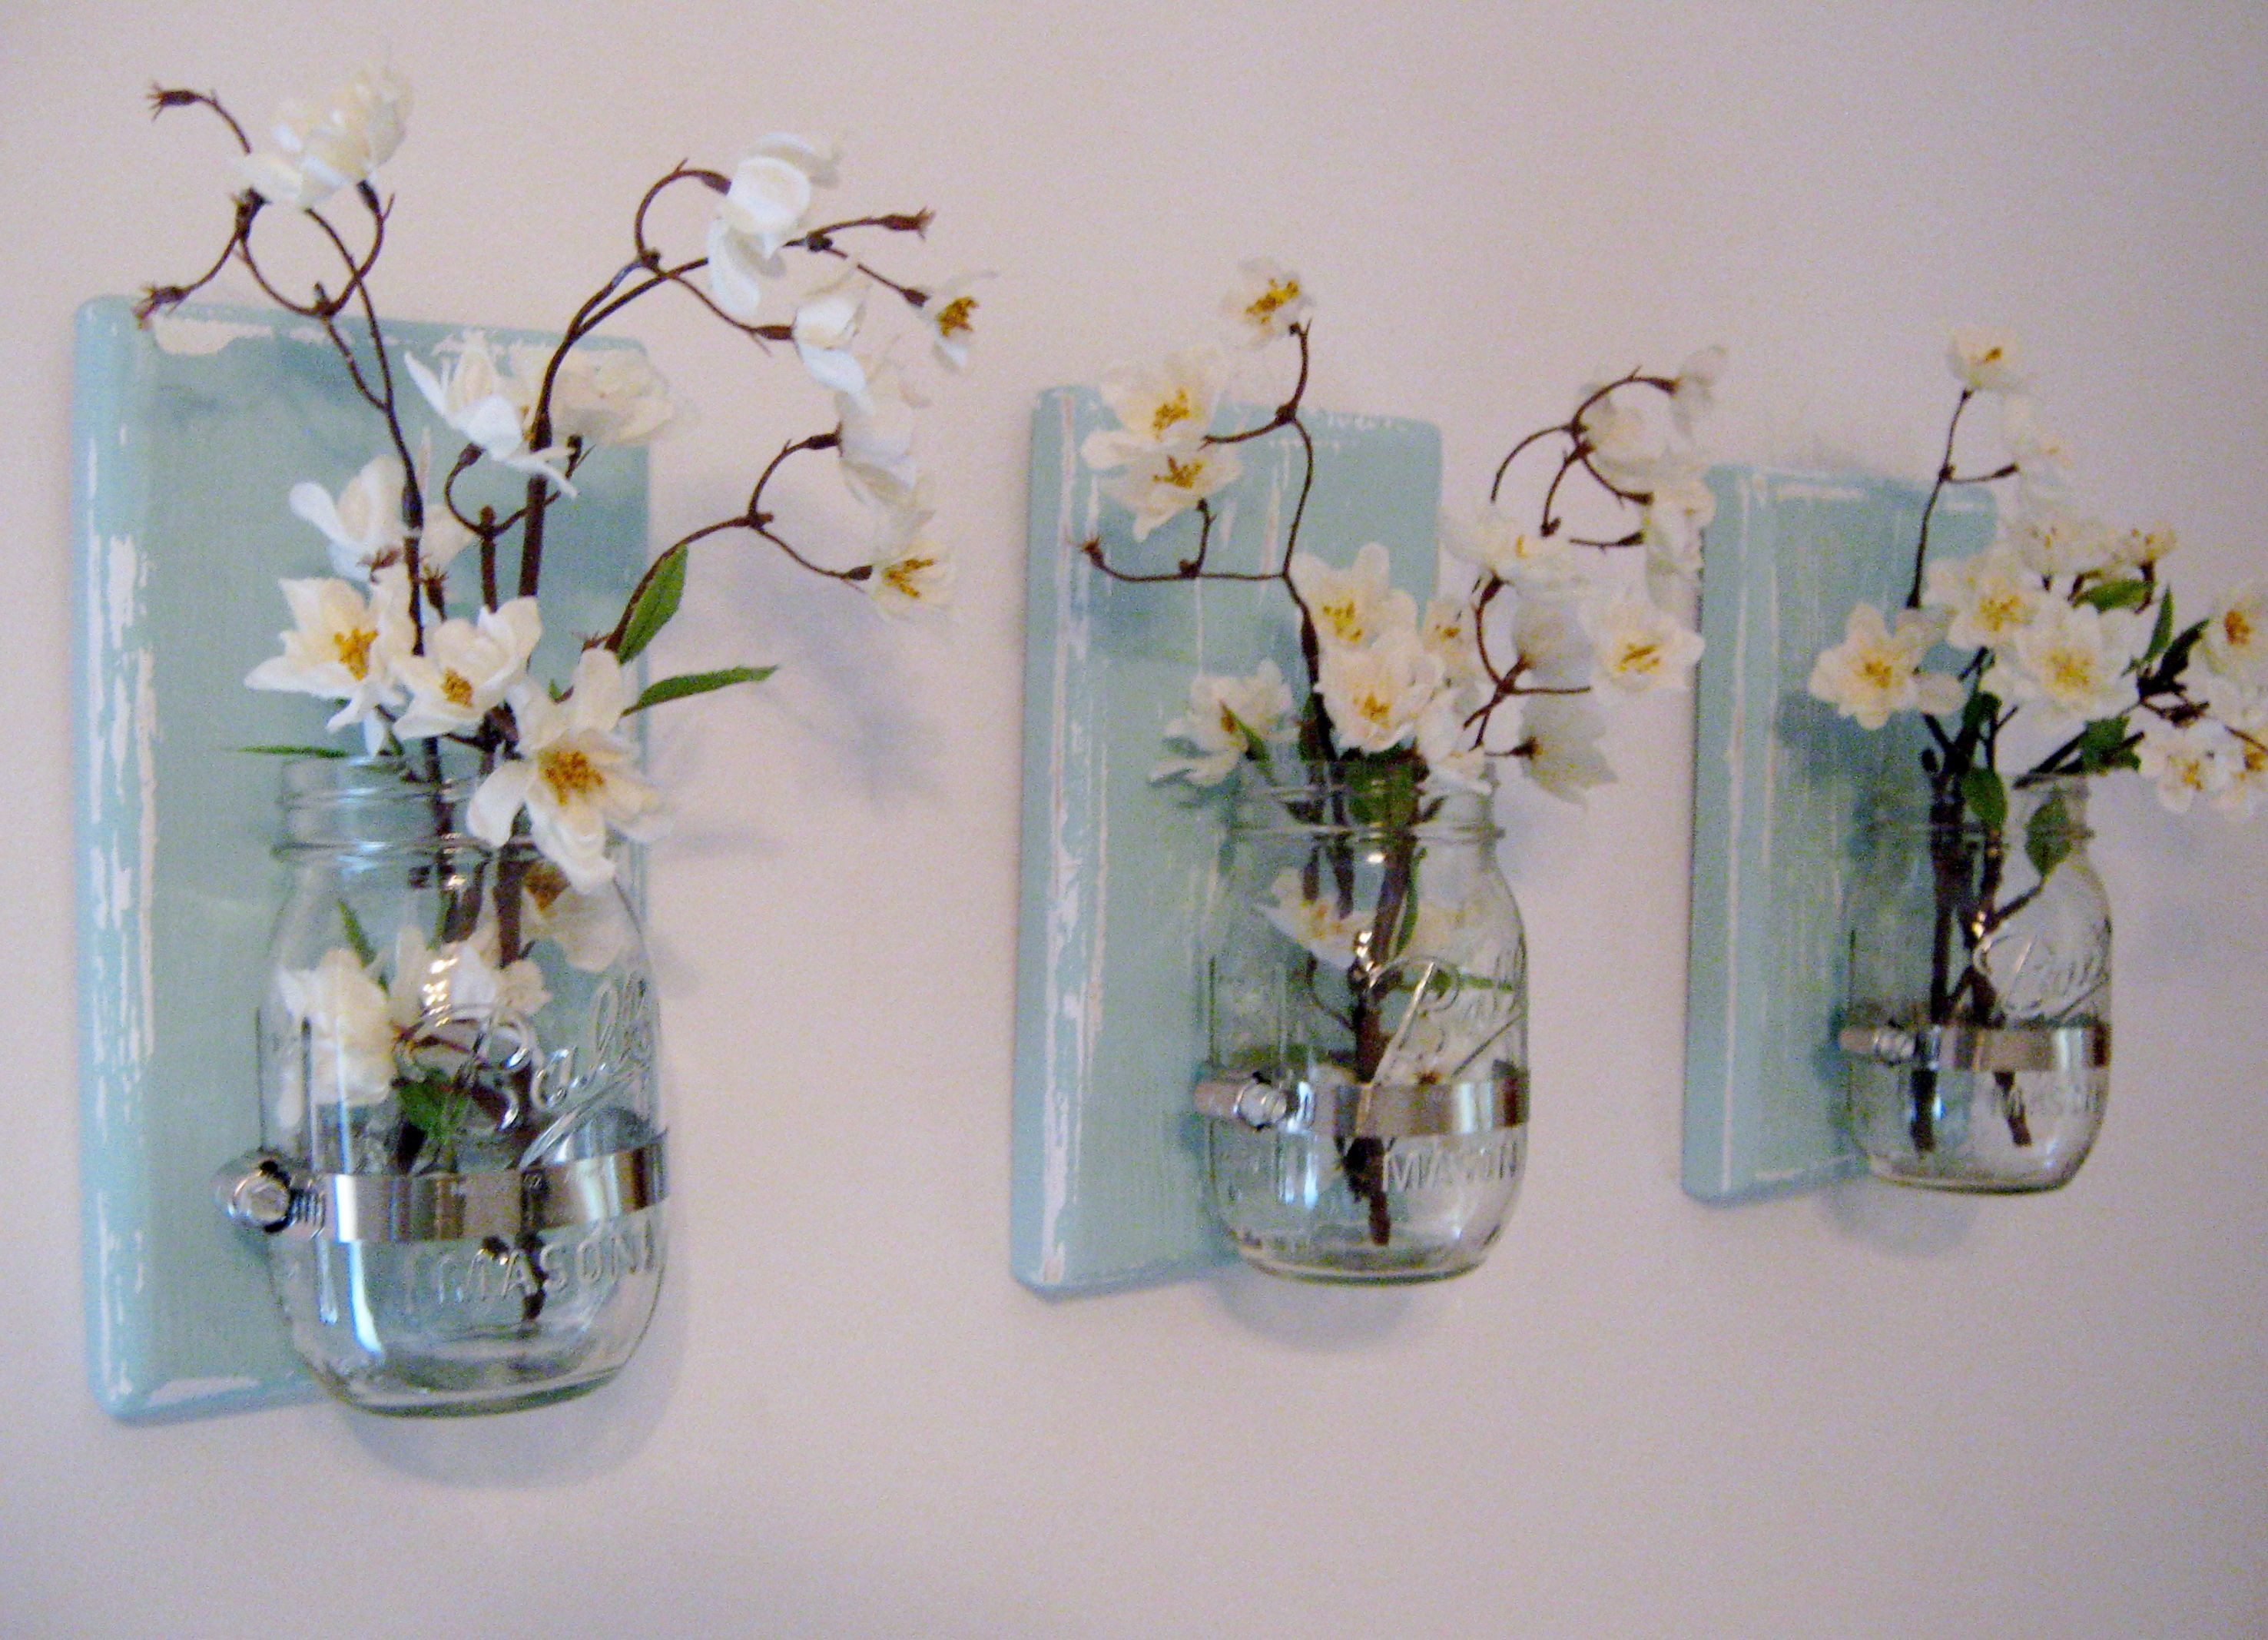 Hanging Wall Vase Sconces Of Pin by Georgia Leppell On Bathroom Ideas Pinterest Mason Jar within Rustic Farmhouse Mason Jar Wall Sconces Set Of 3 Mason Jar Sconces Blue Wall Sconces Blue Sconces Bedroom Sconces Mason Jar Wall Decor